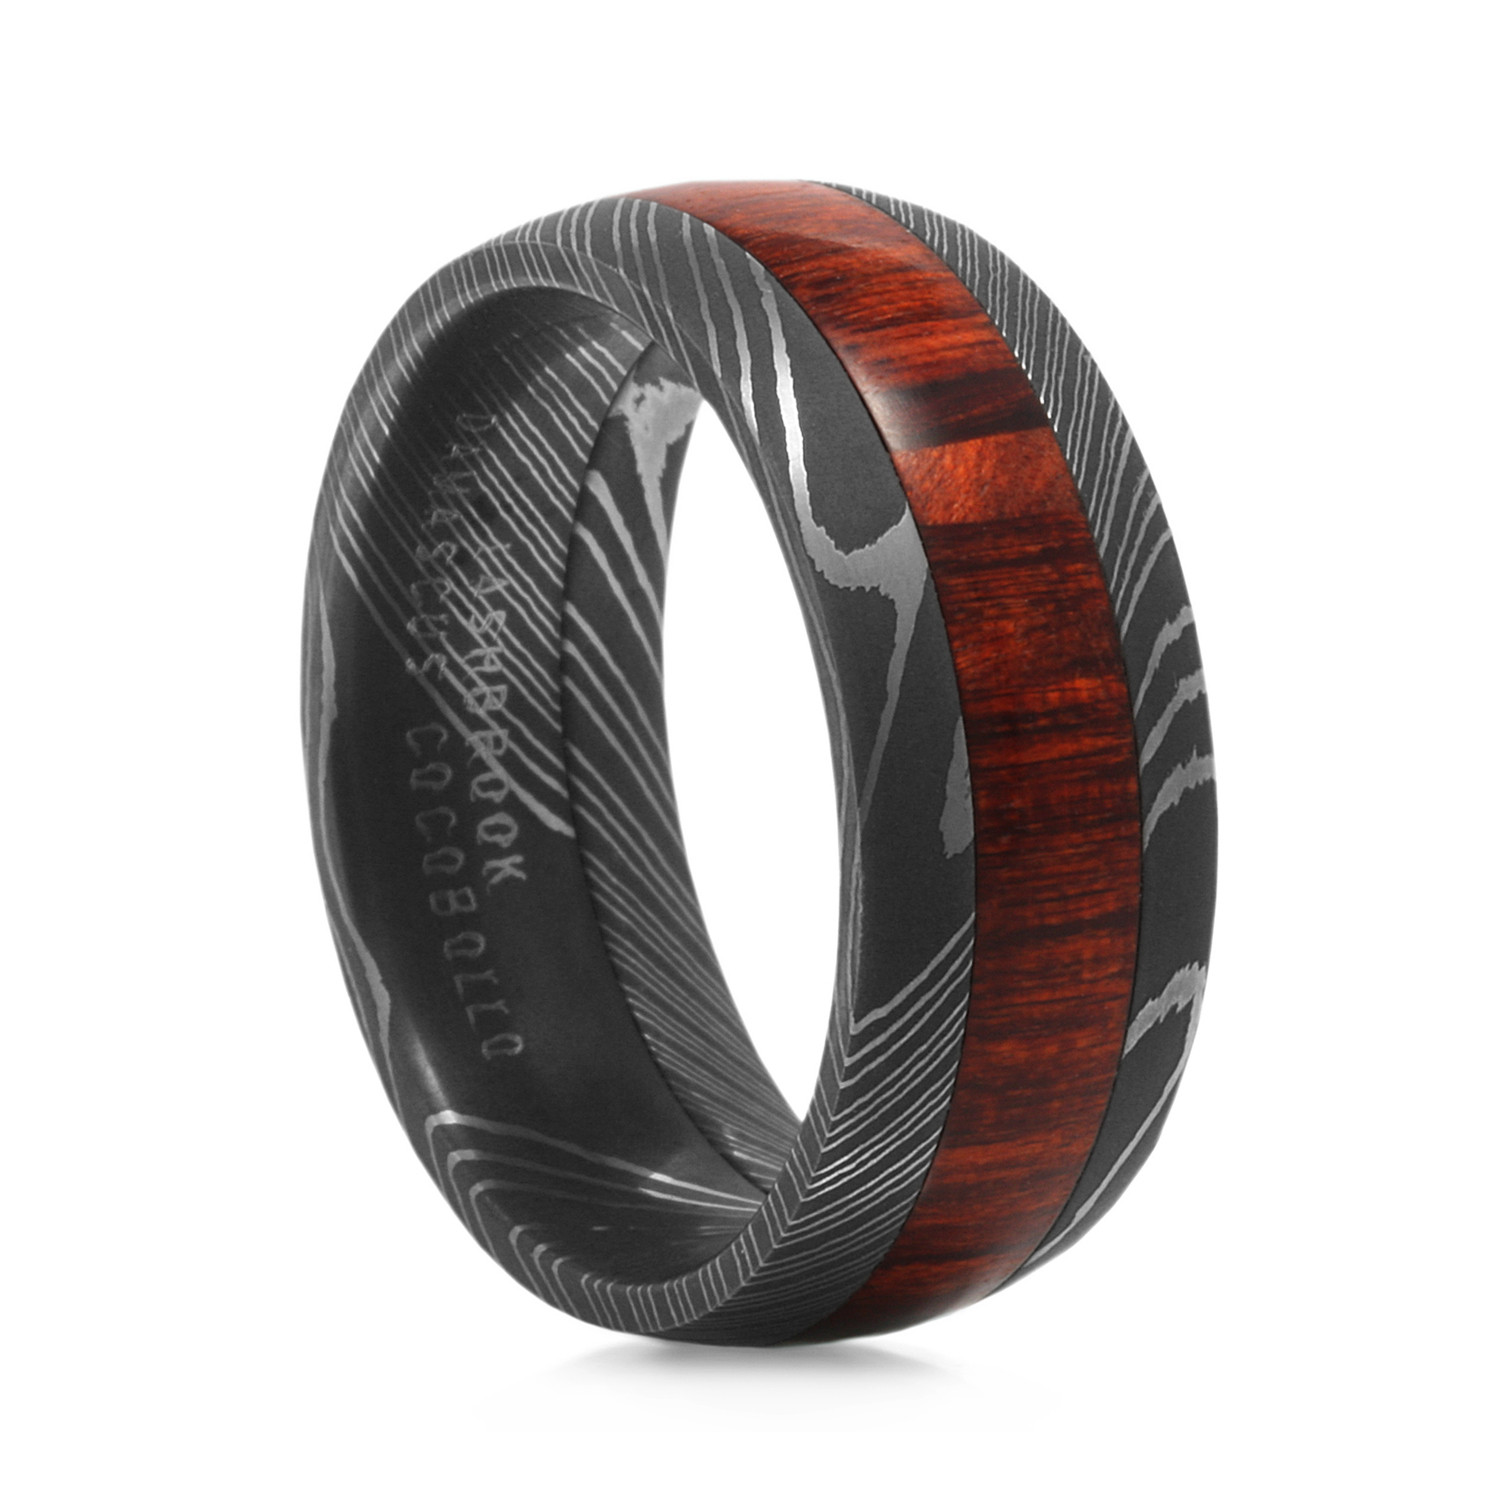 Lashbrook Arbor Damascus Steel Ring With Wood Inlay Size 7